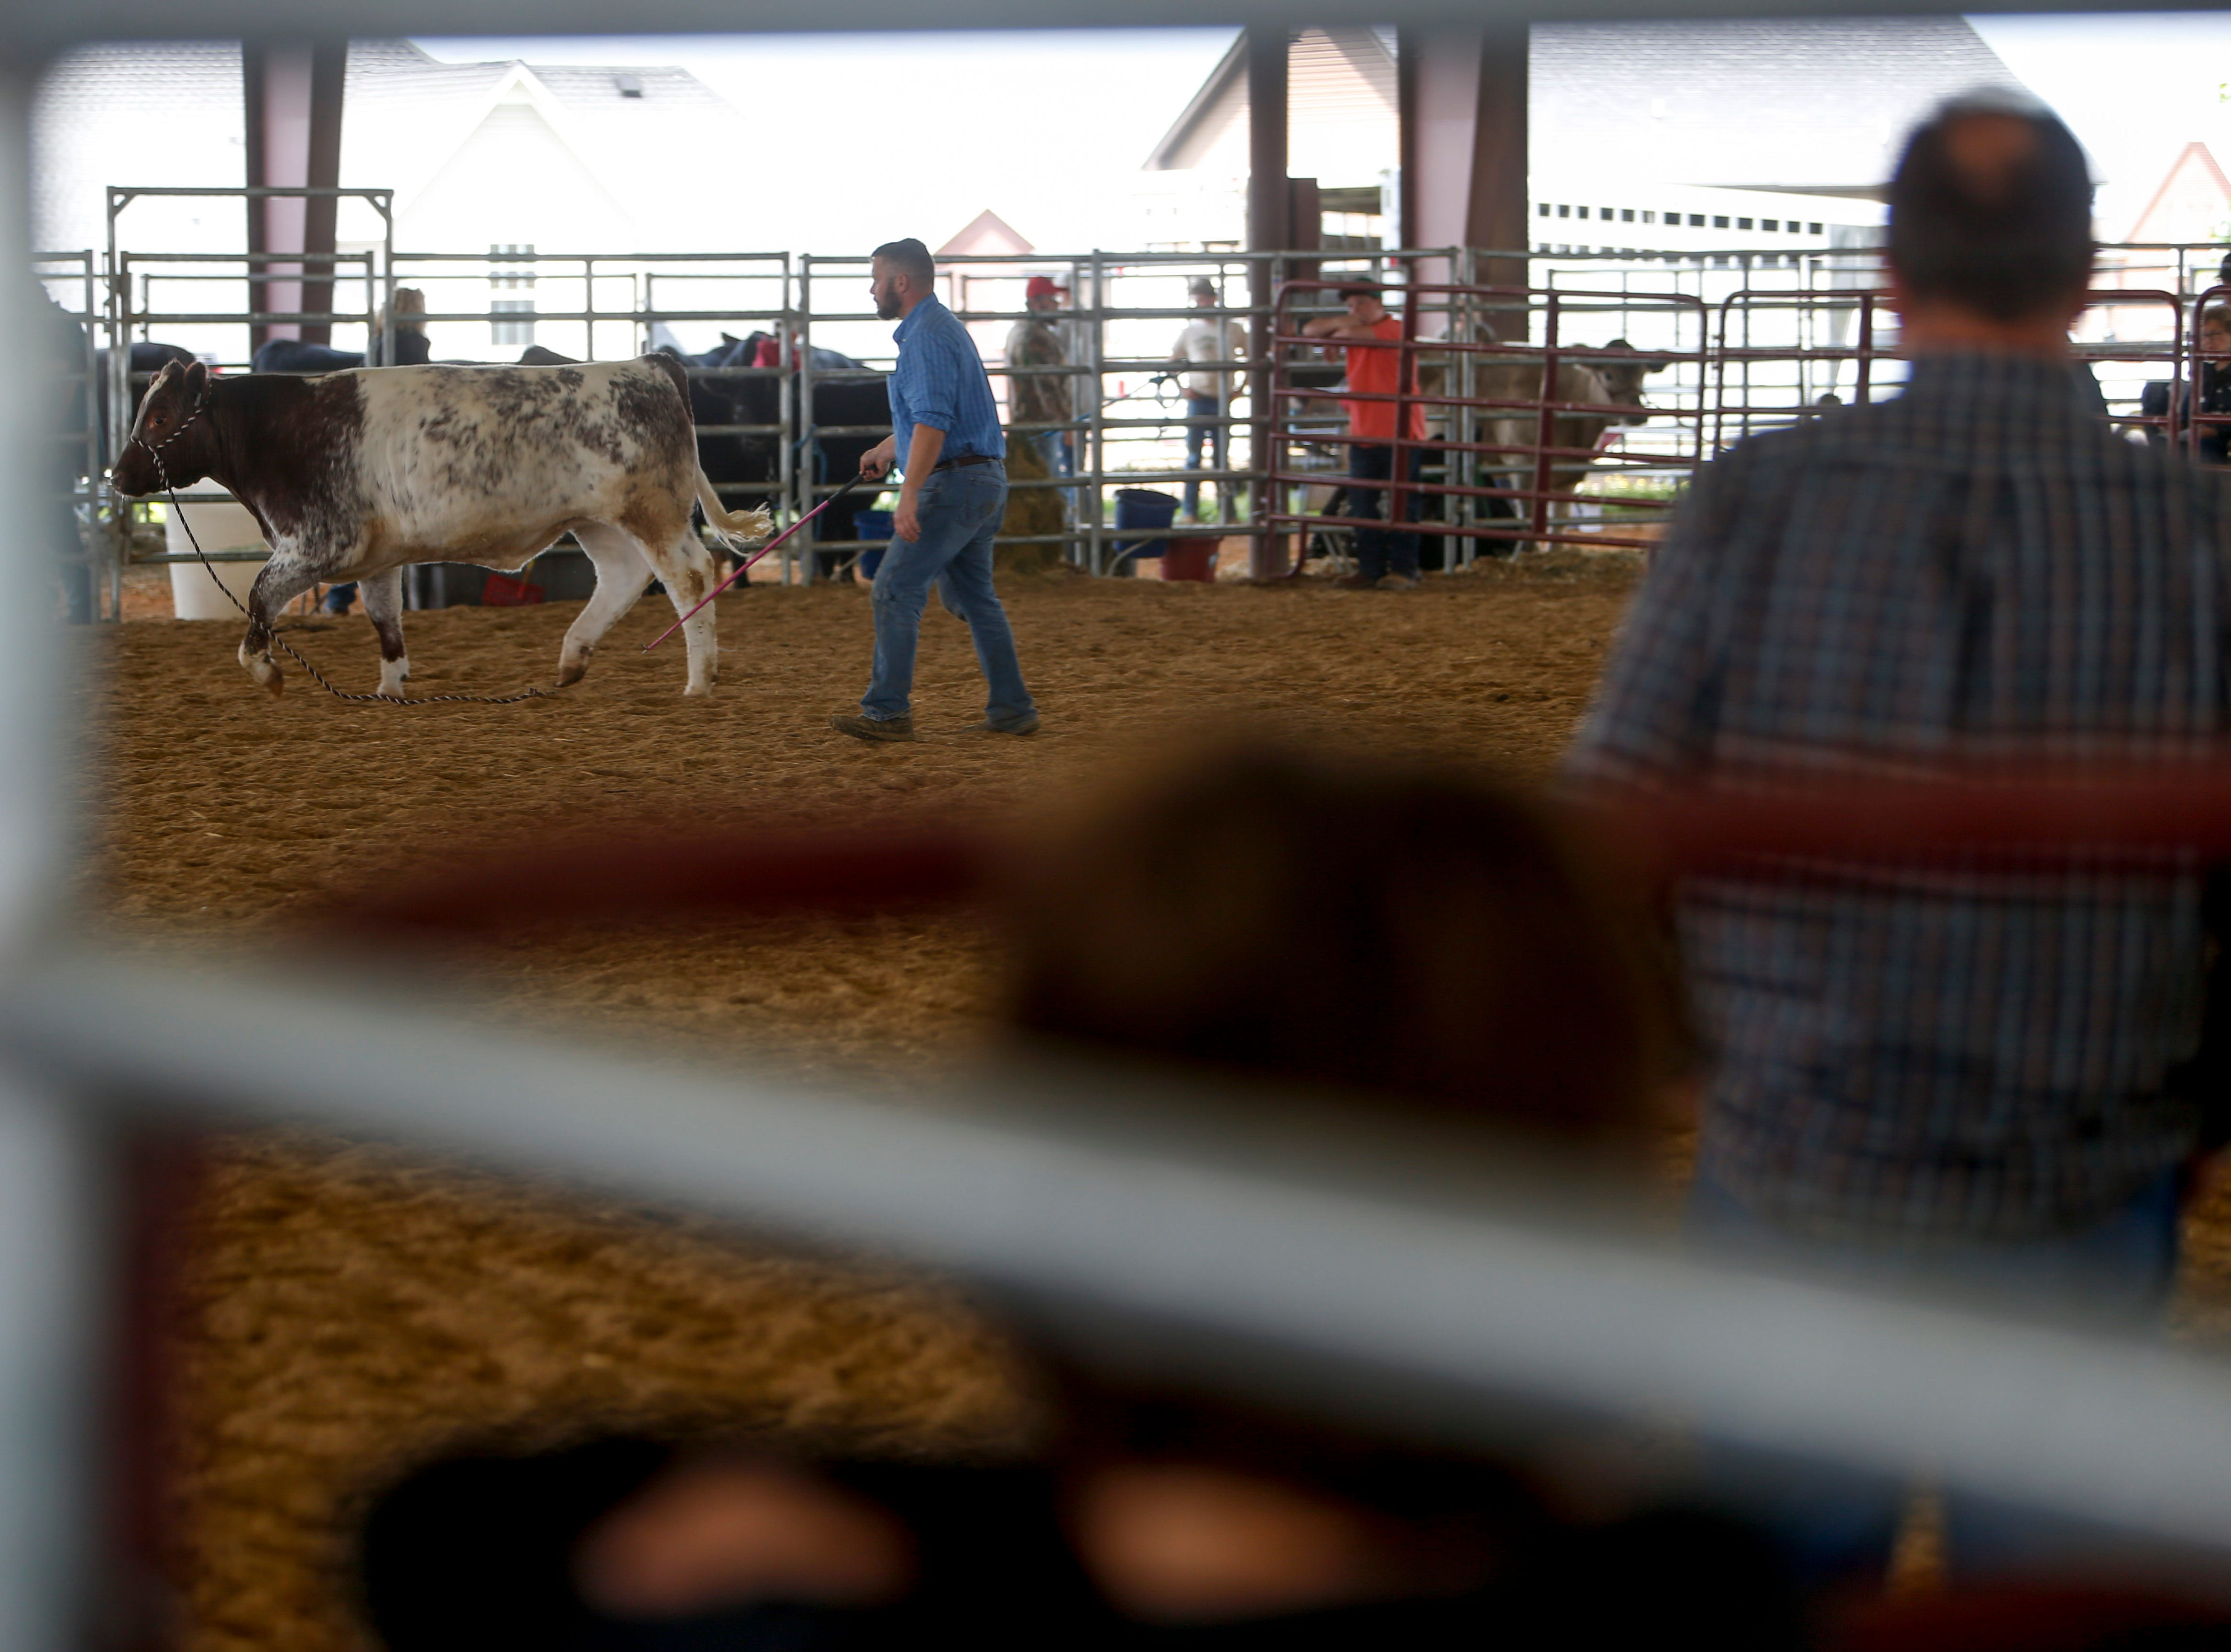 A handler tries to get a steer under control during a walk through in auction at the John Bartee Agricultural Center in Clarksville, Tenn., on Tuesday, May 14, 2019.